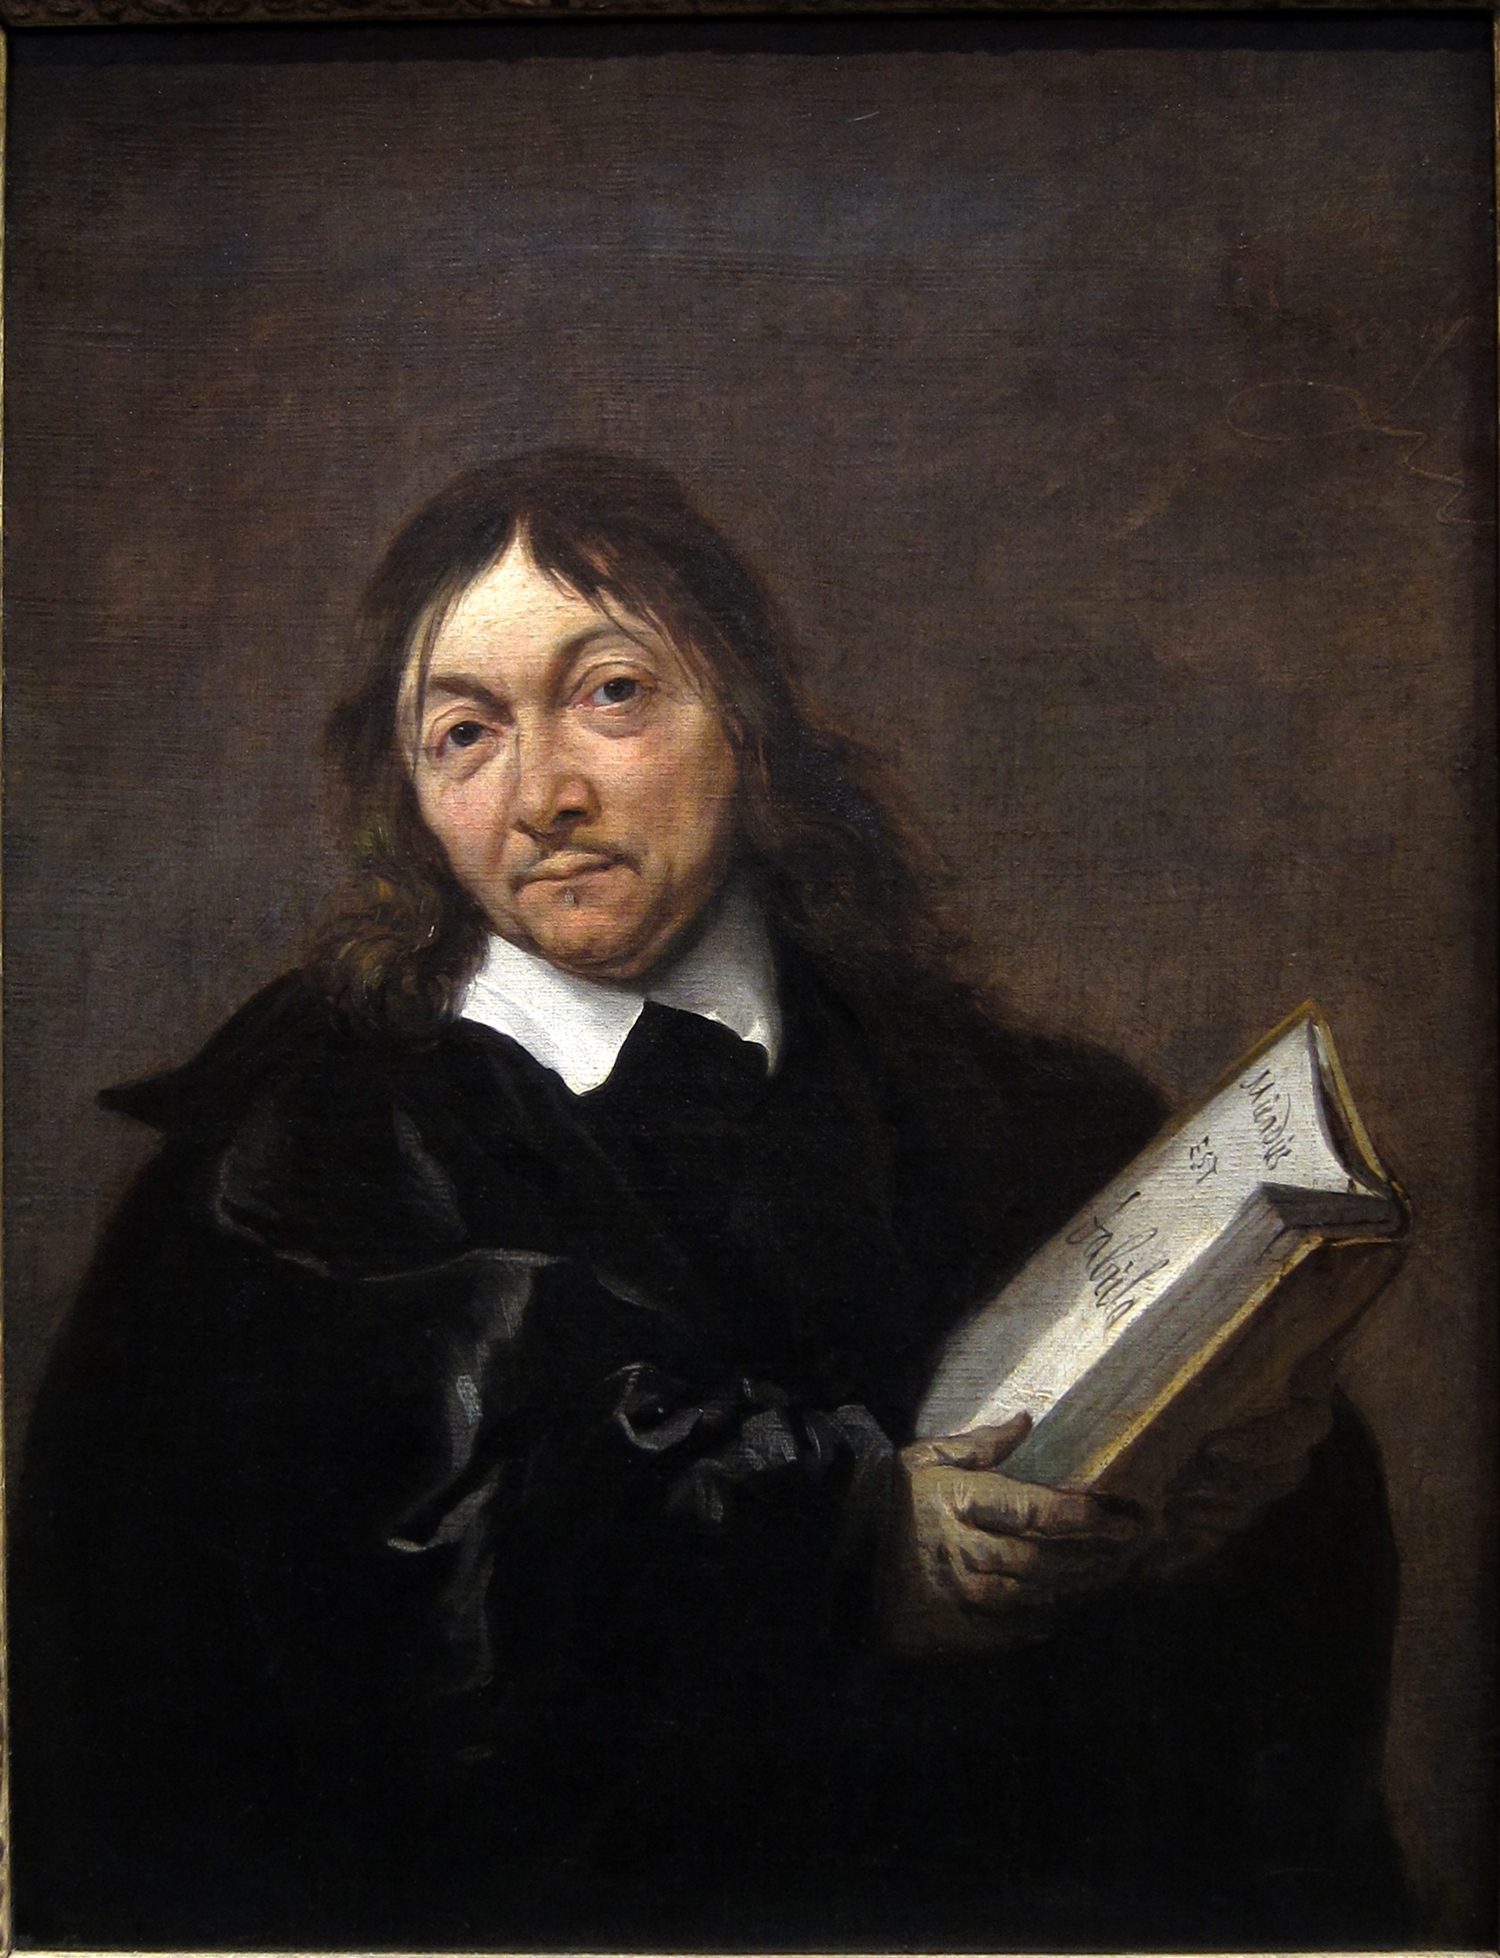 a description of how ren descartes and john locke proved that we are not brains in vats For instance, the french philosopher rené descartes (1596-1650) also considered the issue of free will, arguing in its favour and believing that the mind controls the body through the pineal gland in the brain (an idea that made some sense at the time but was later proved incorrect) descartes also believed in the existence of innate natural.